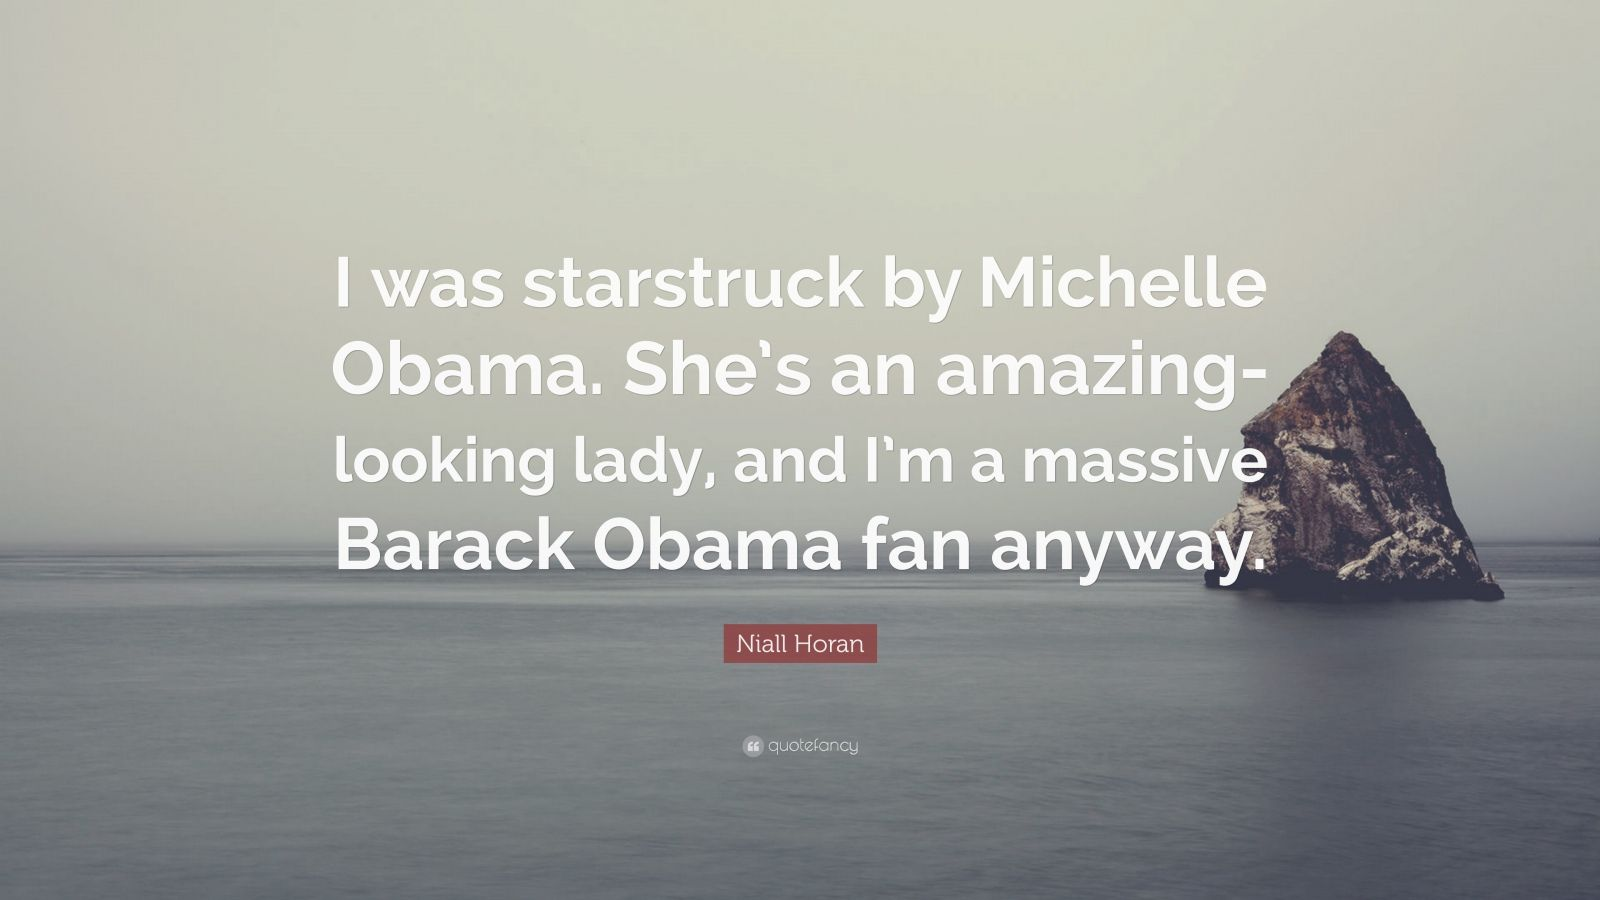 """Niall Horan Quote: """"I was starstruck by Michelle Obama. She's an amazing-looking lady, and I'm a massive Barack Obama fan anyway."""""""